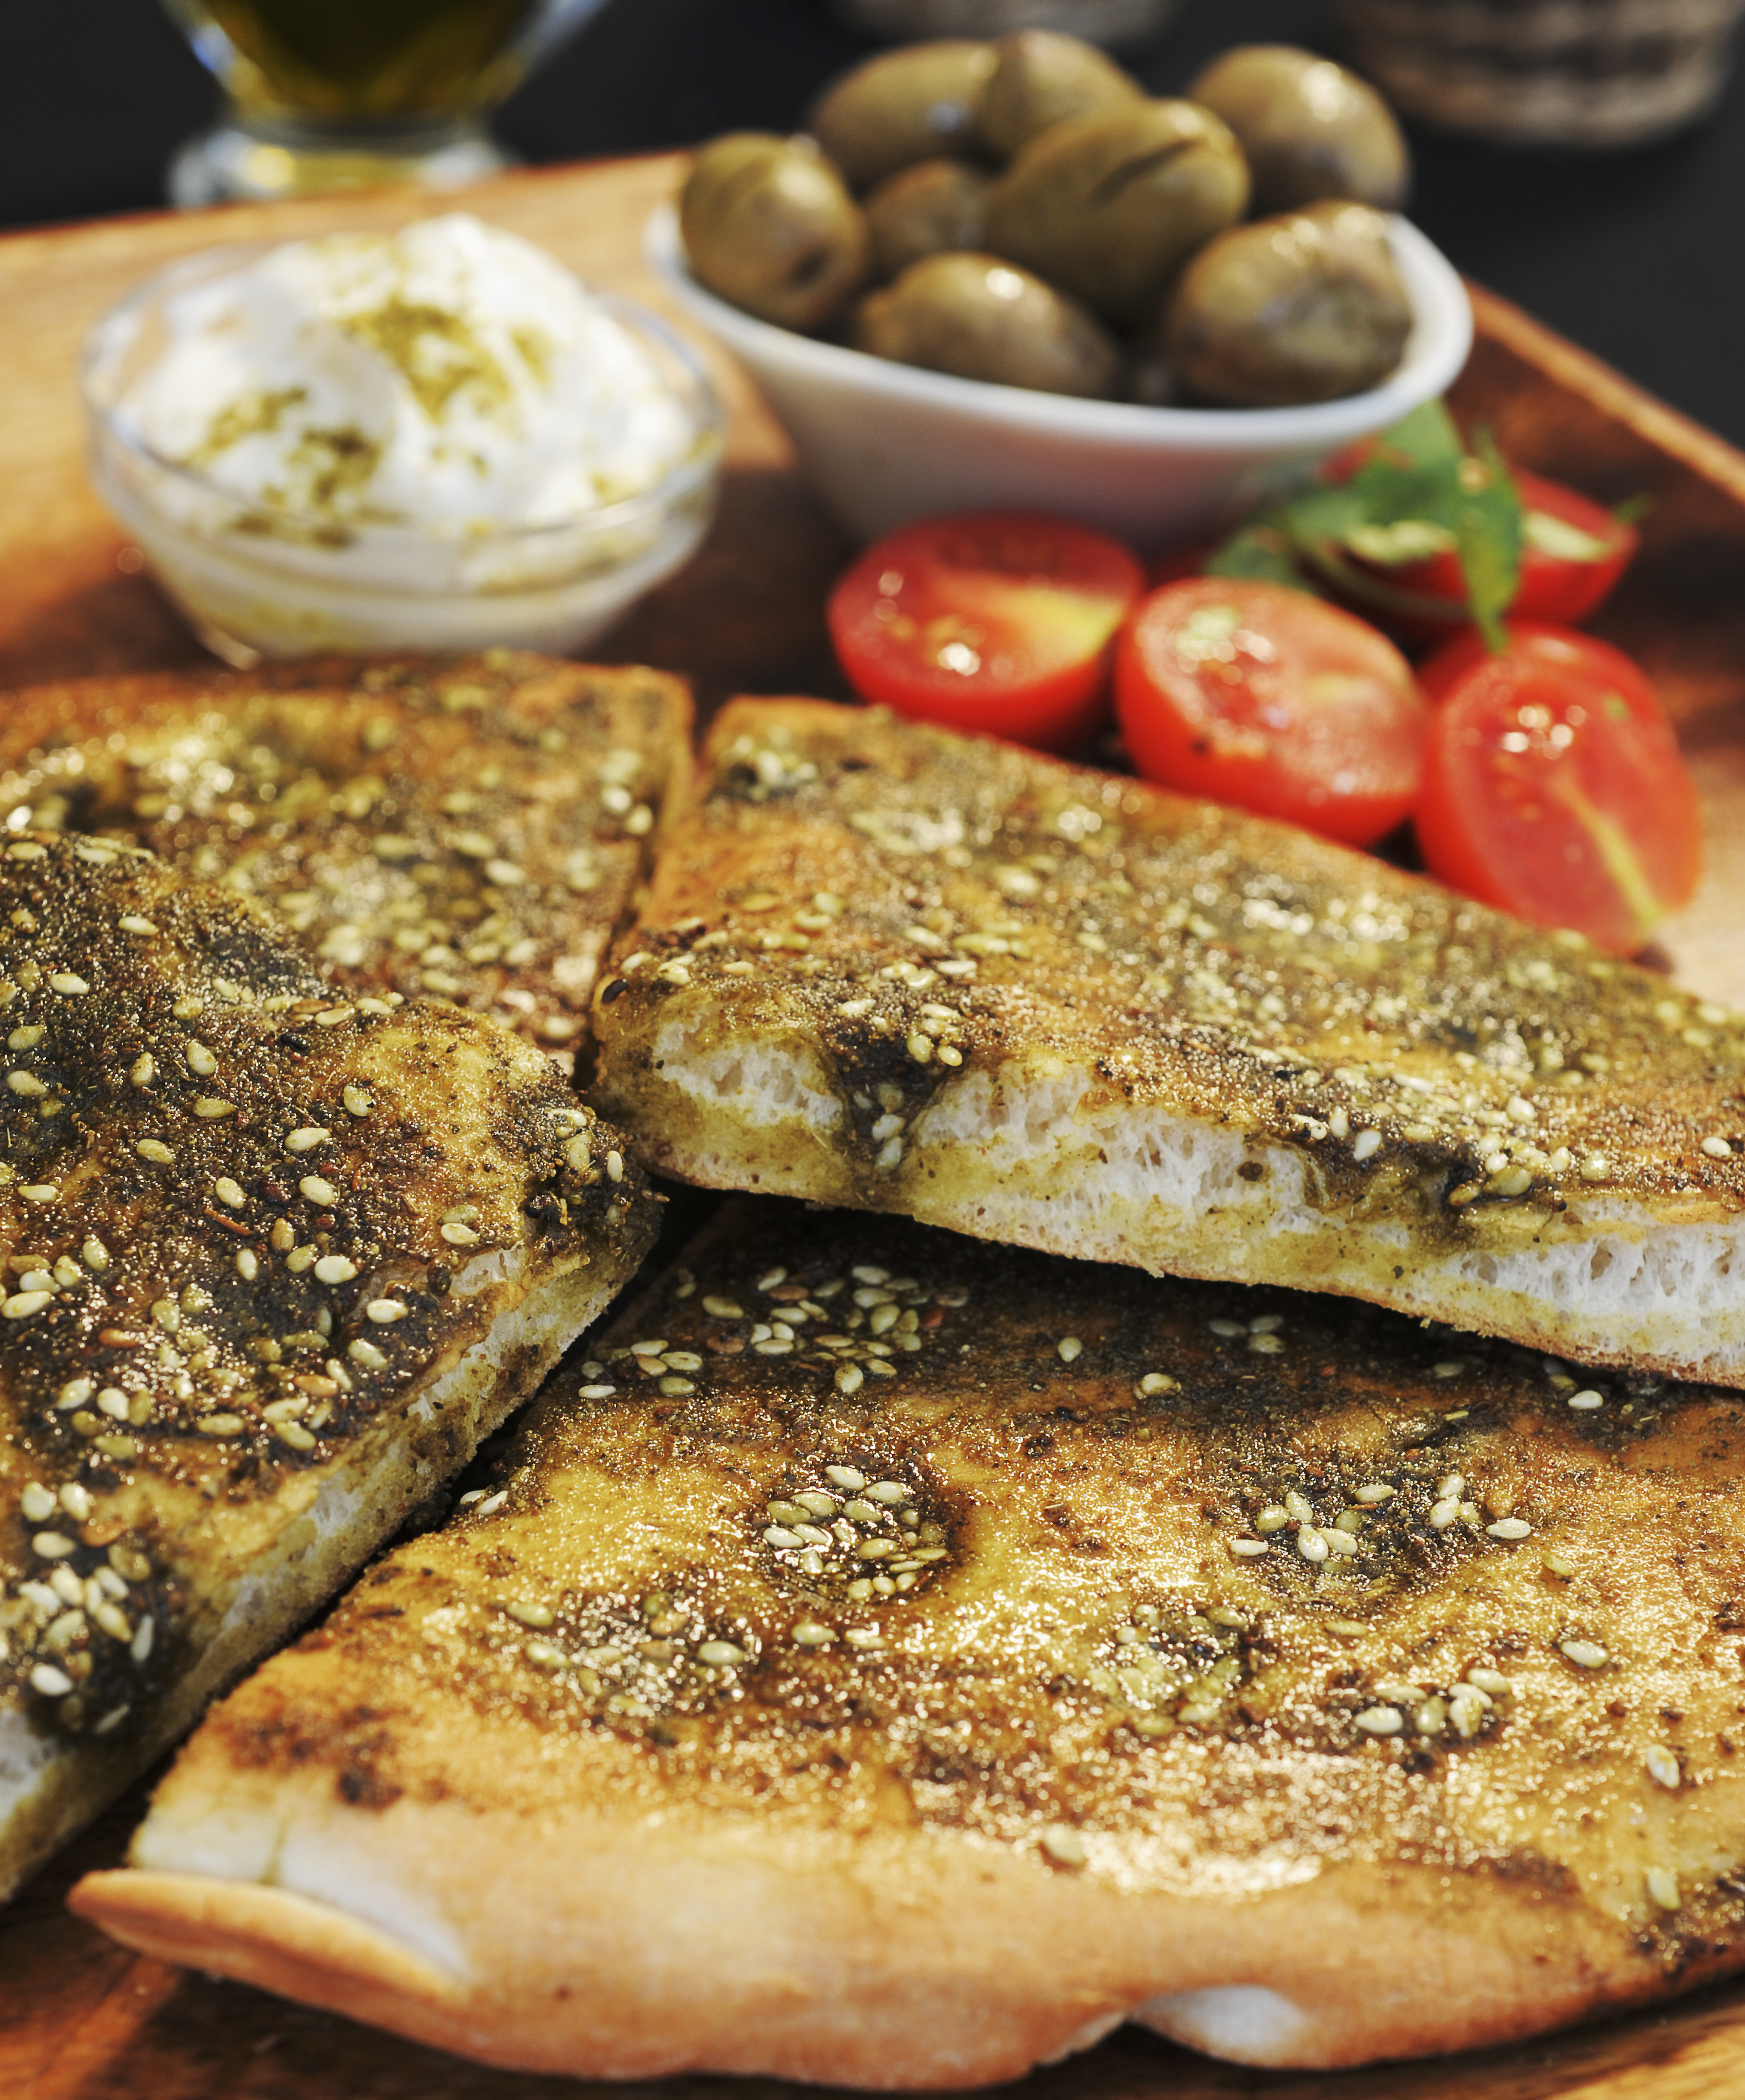 Za'atar: A Spice Mix With Biblical Roots And Brain Food Reputation